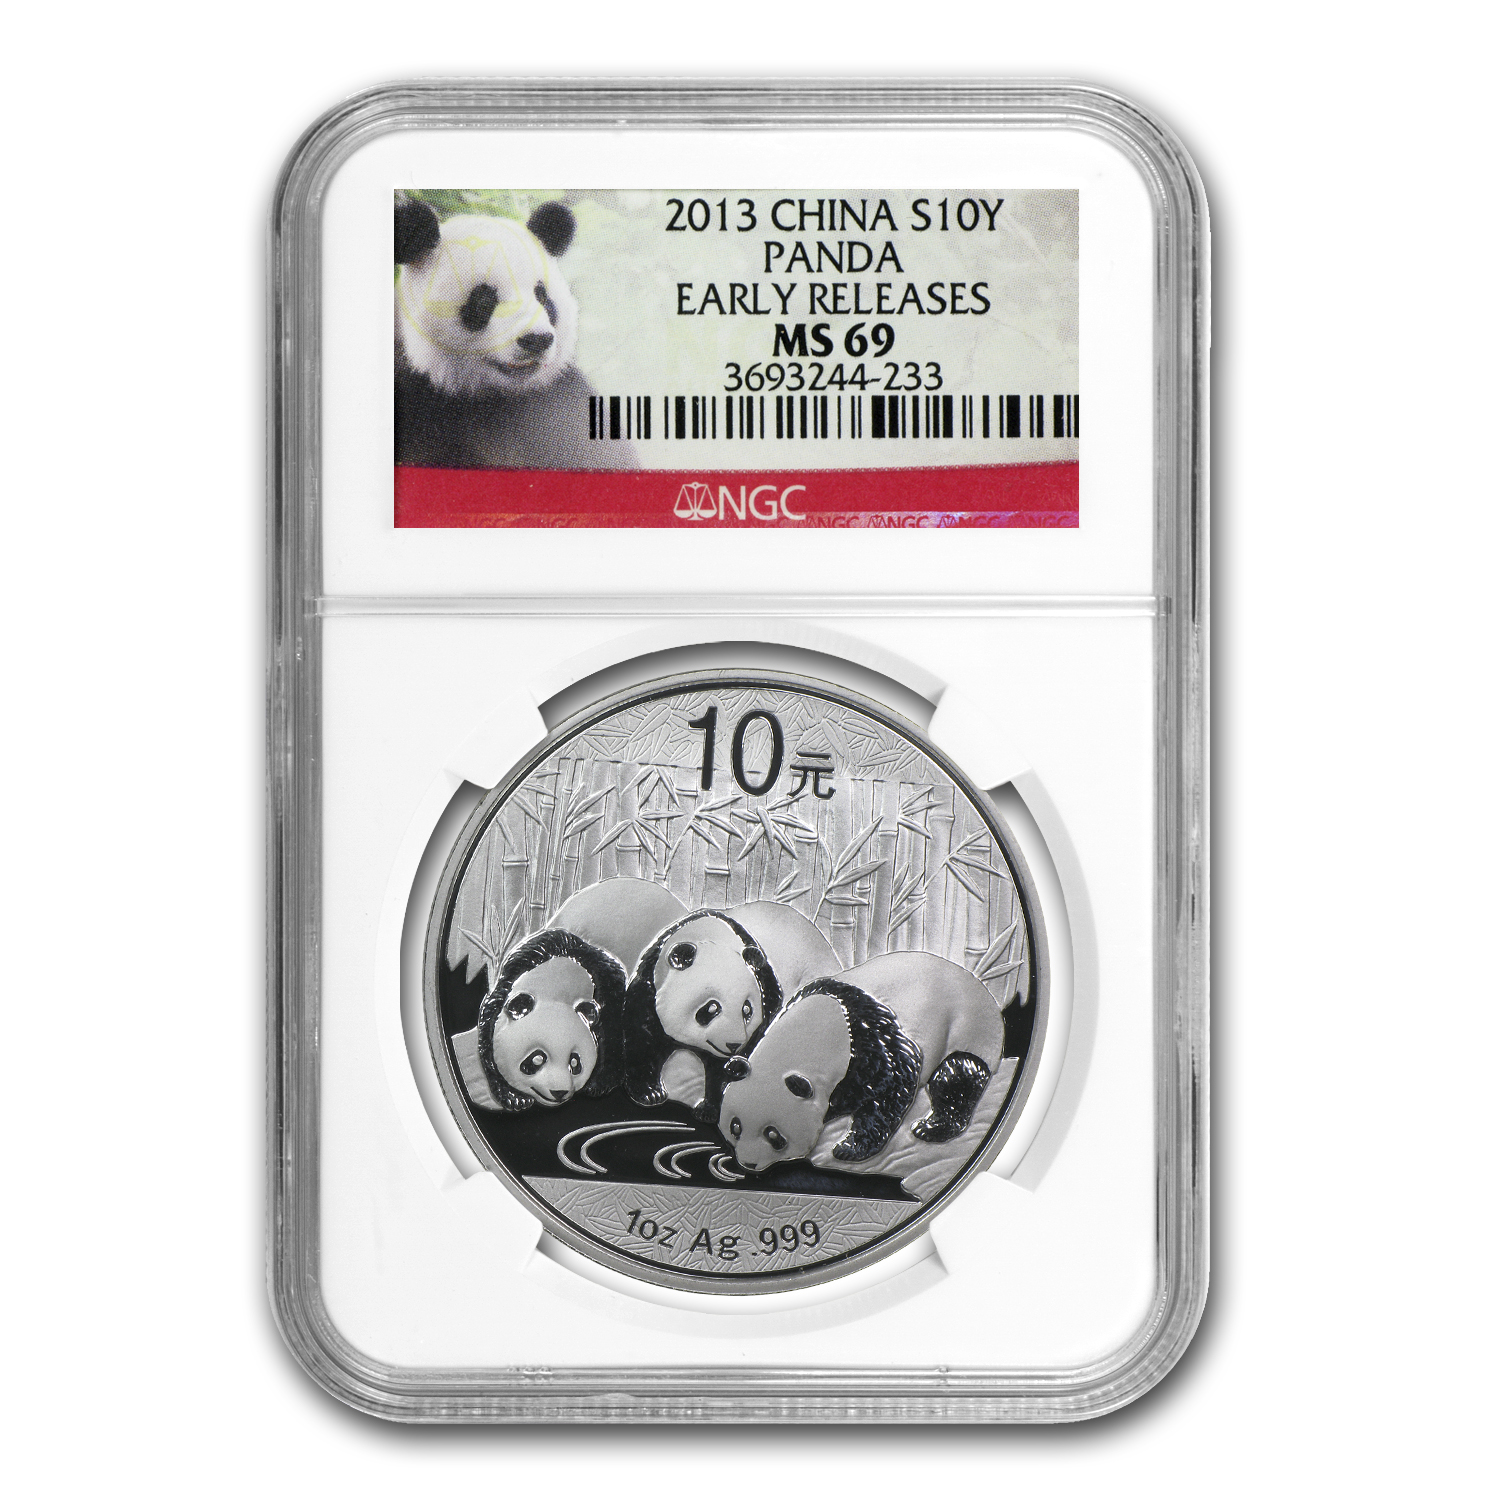 2013 China 1 oz Silver Panda MS-69 NGC (Early Releases)